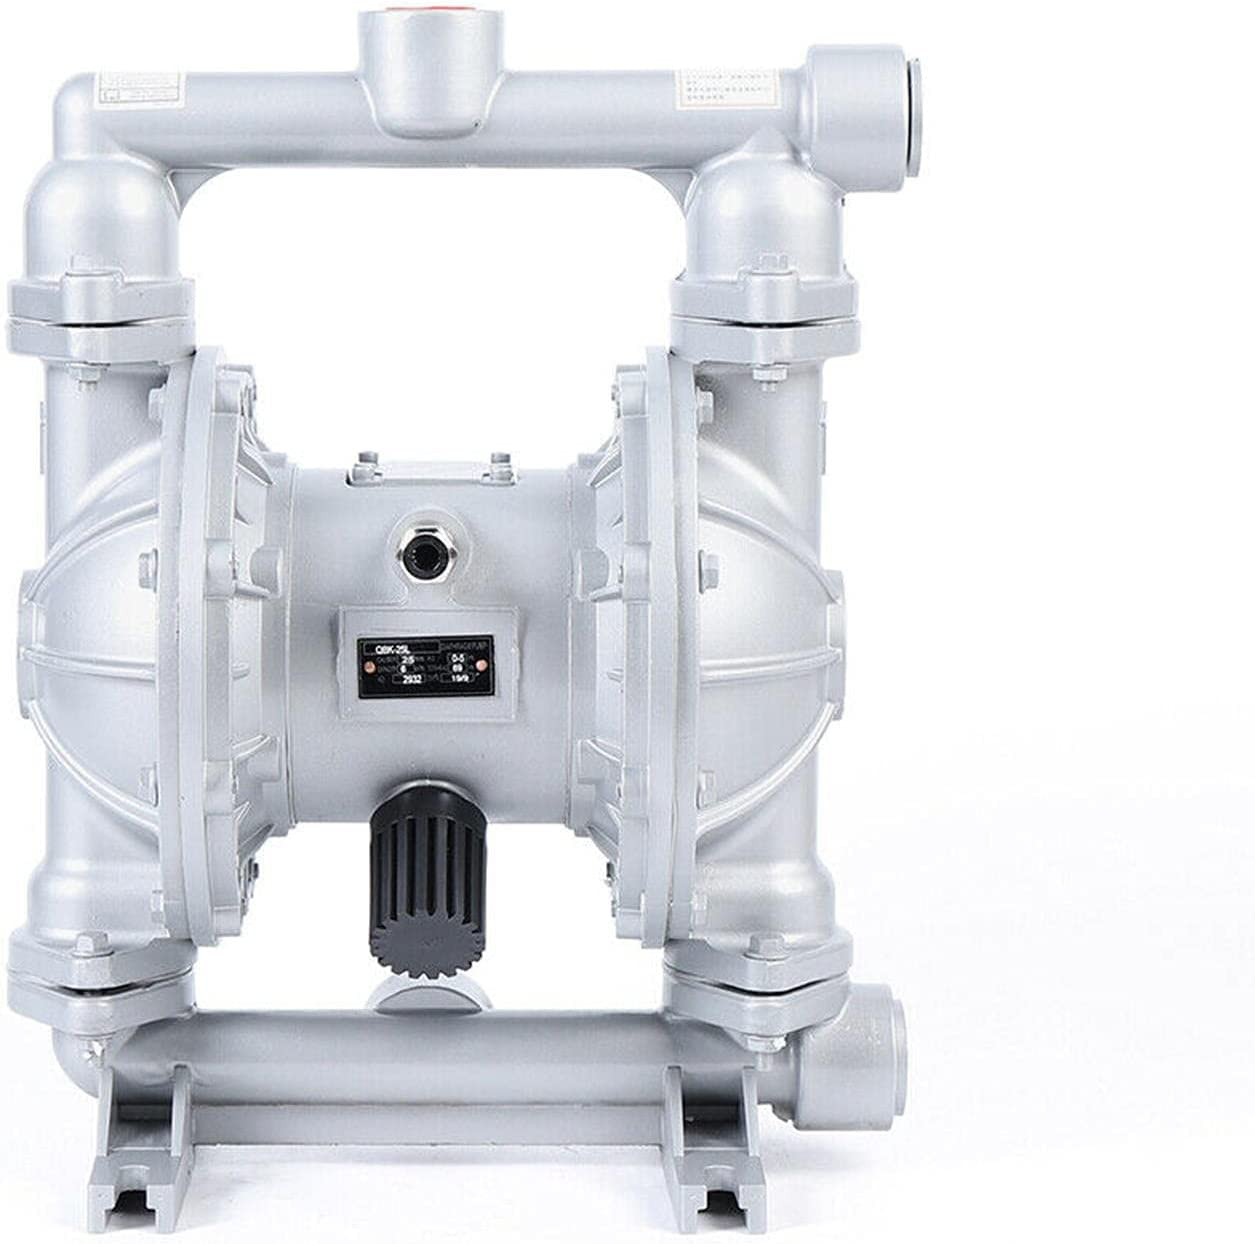 Air-Operated Double High order Diaphragm Pump24 Industr GPMAluminum SALENEW very popular